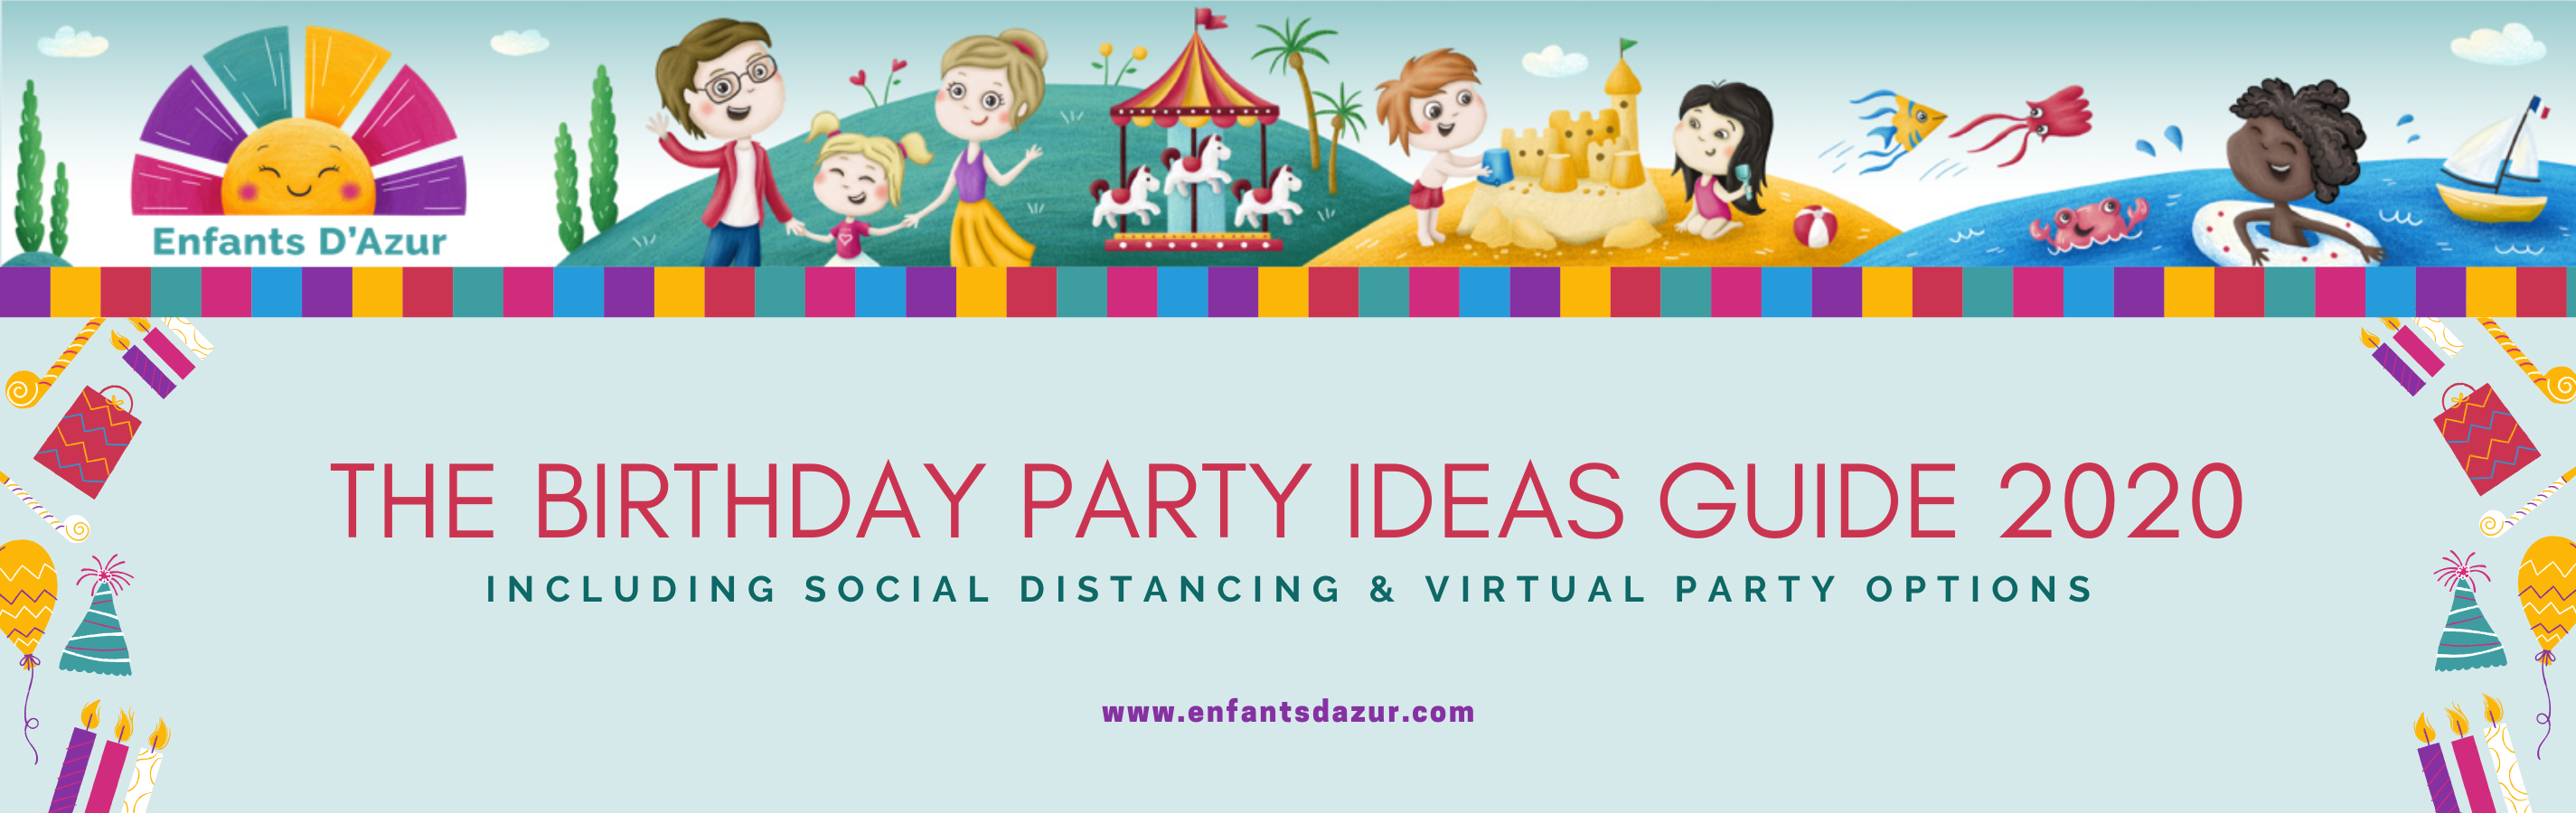 Title Image. The Birthday Party Ideas guide 2020 Social Distancing and Virtual birthday Parties